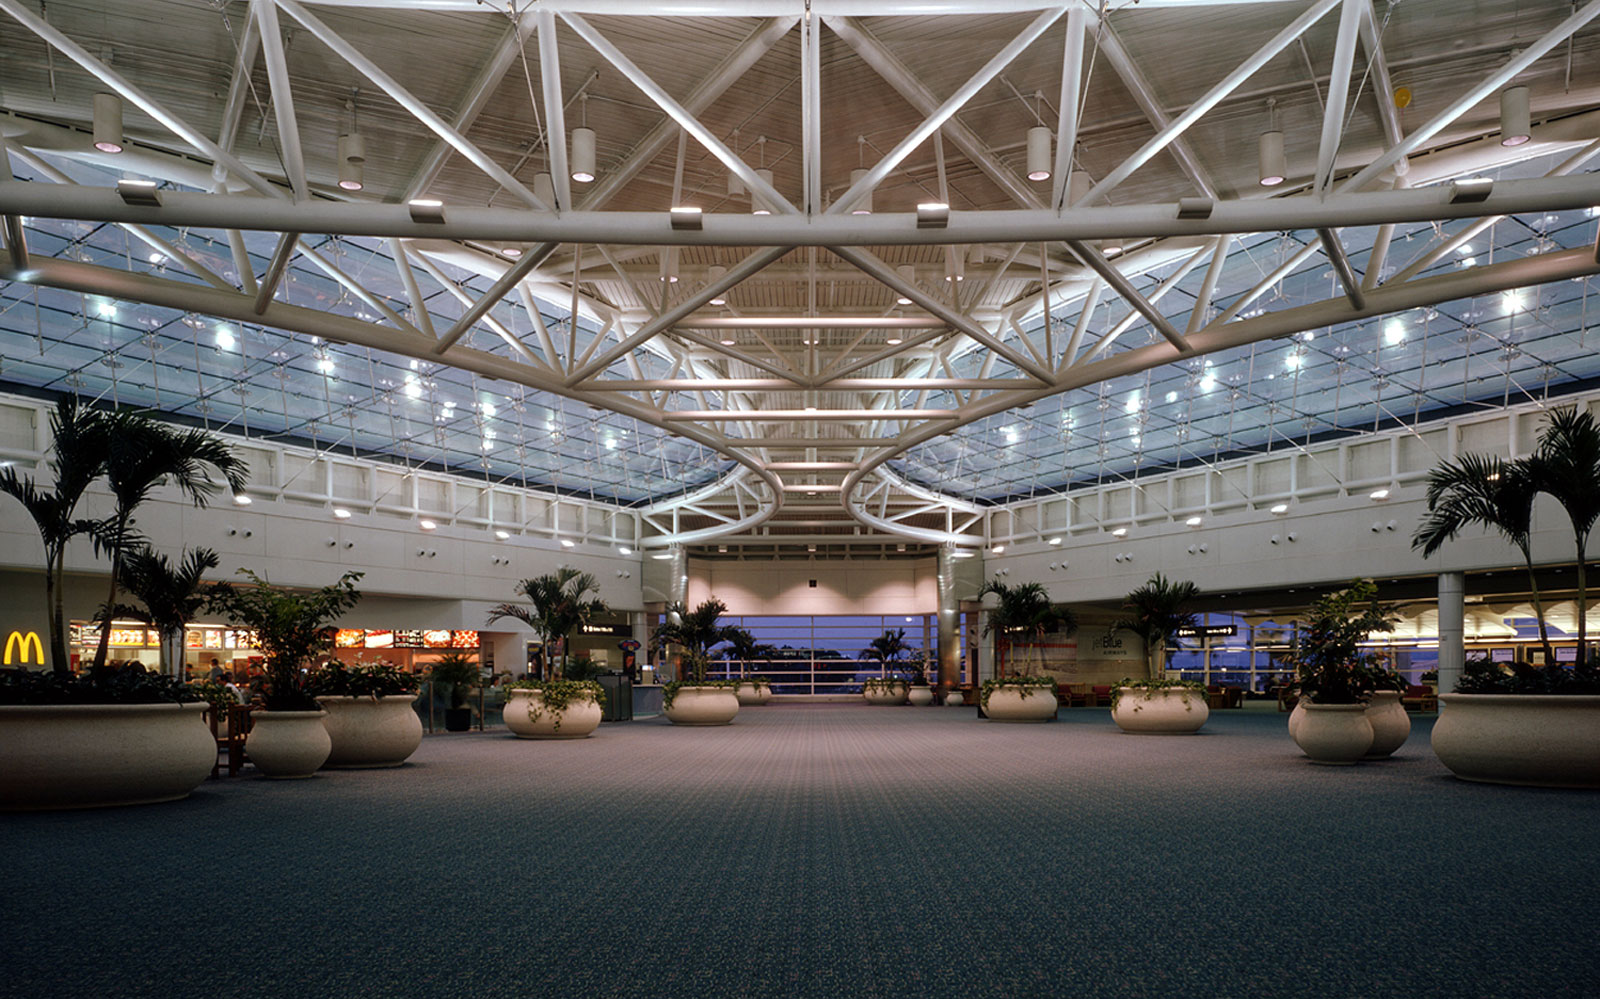 America's best and worst airports: Orlando (MCO)